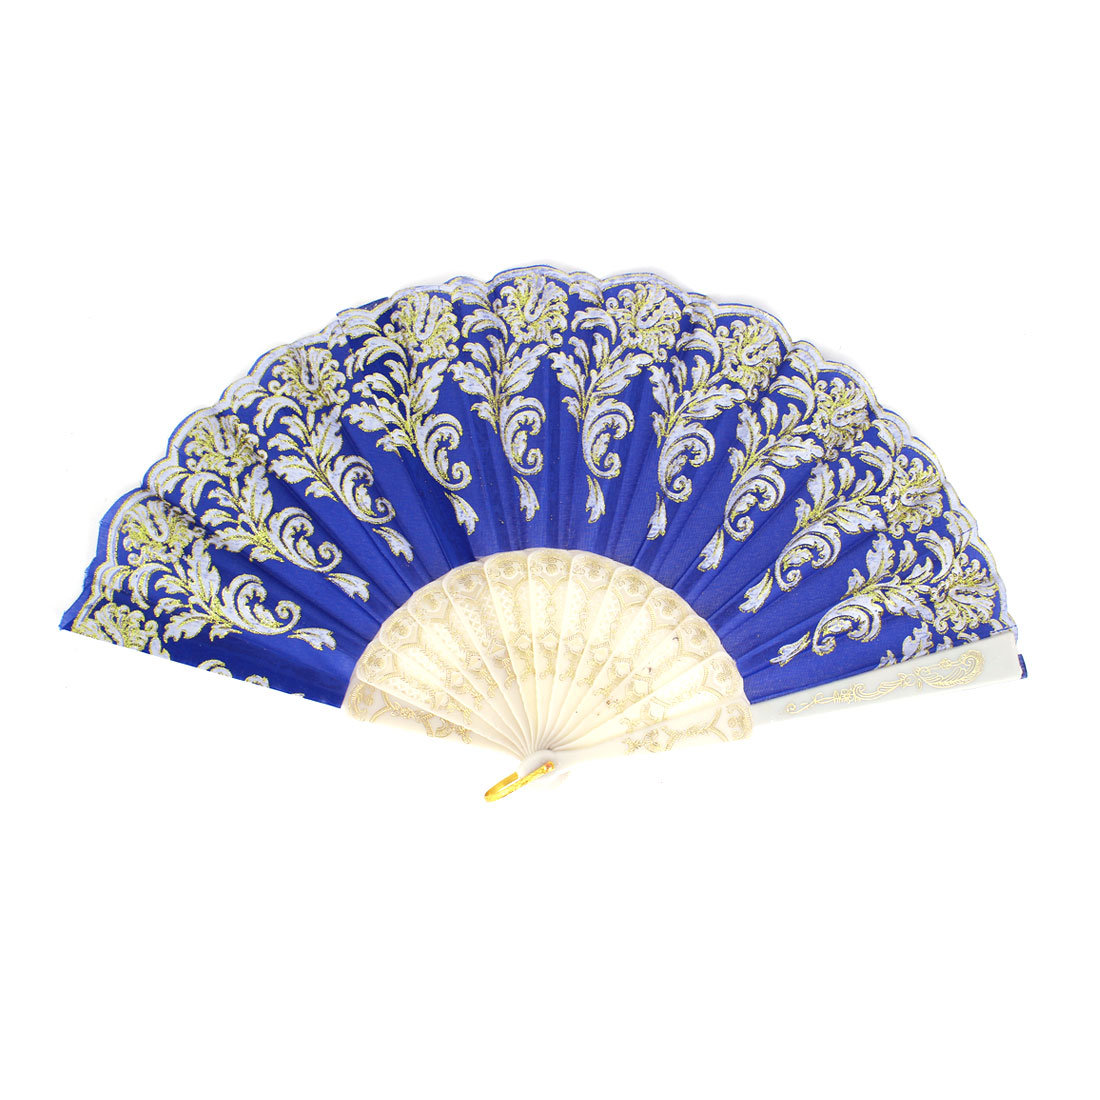 Plastic Frame Gold Tone Glittery Powder Detail Floral Printed Folding Hand Fan Blue White